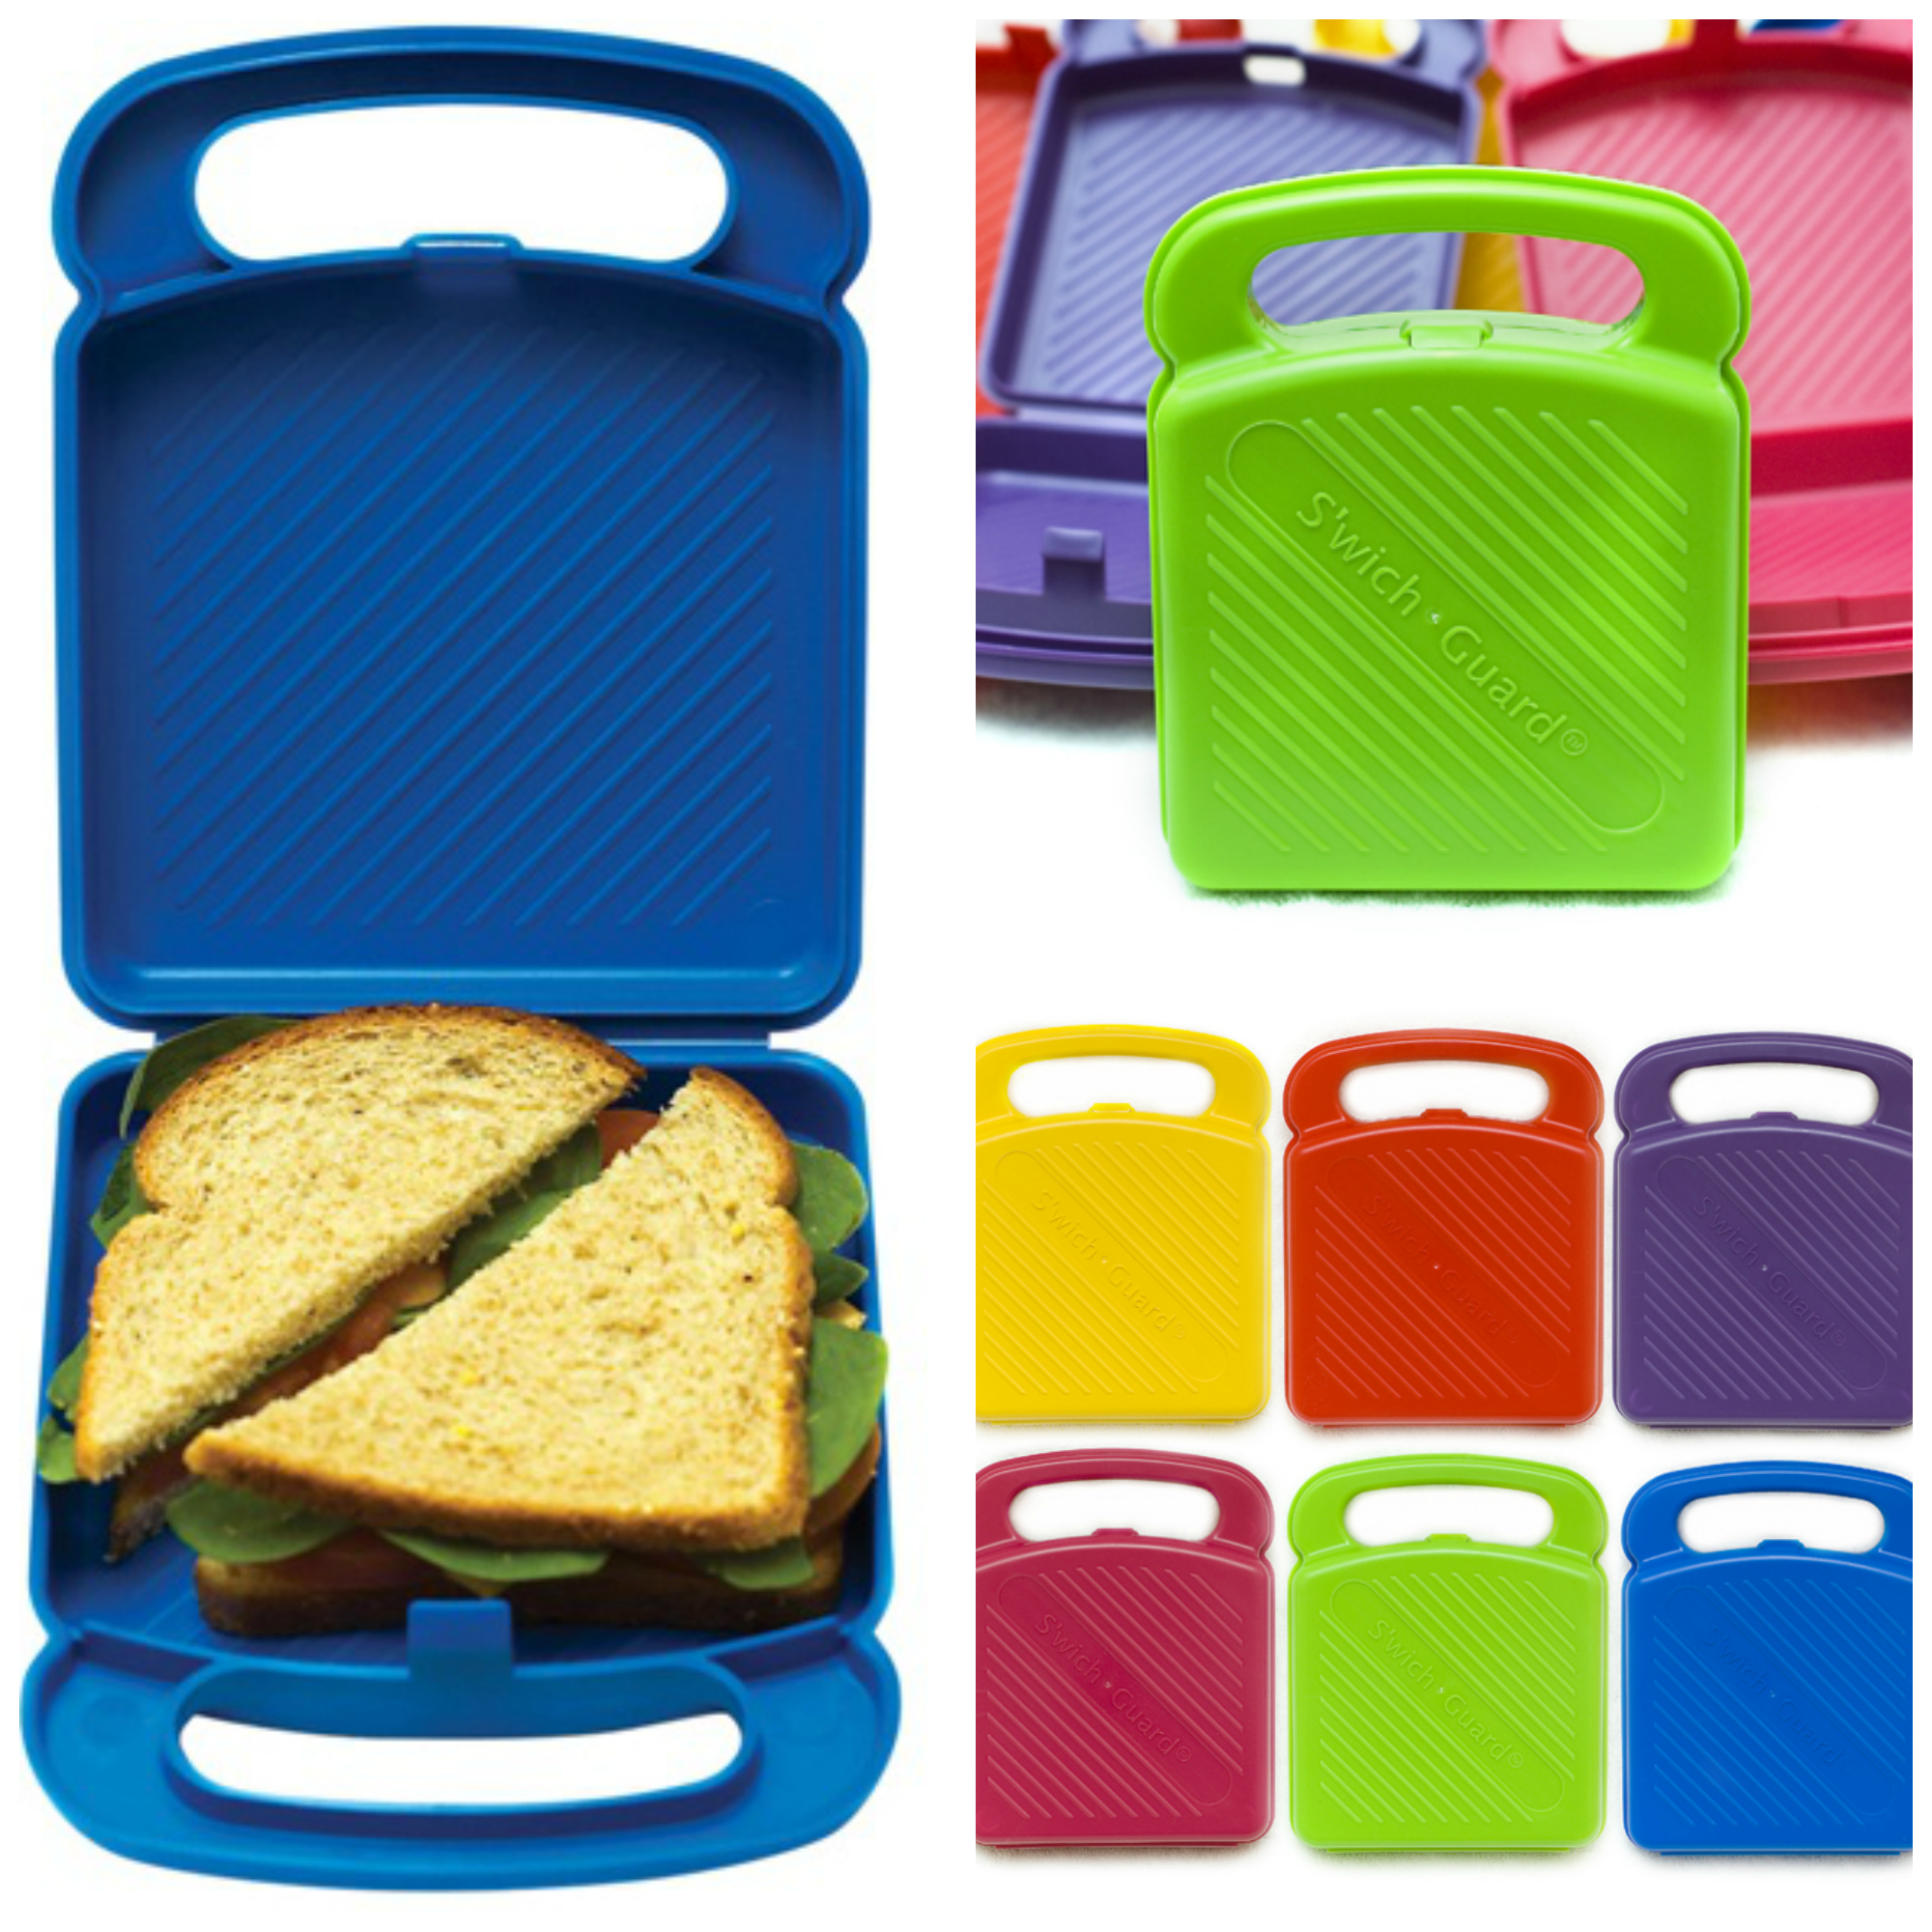 S'wich Guard - Sandwich containers